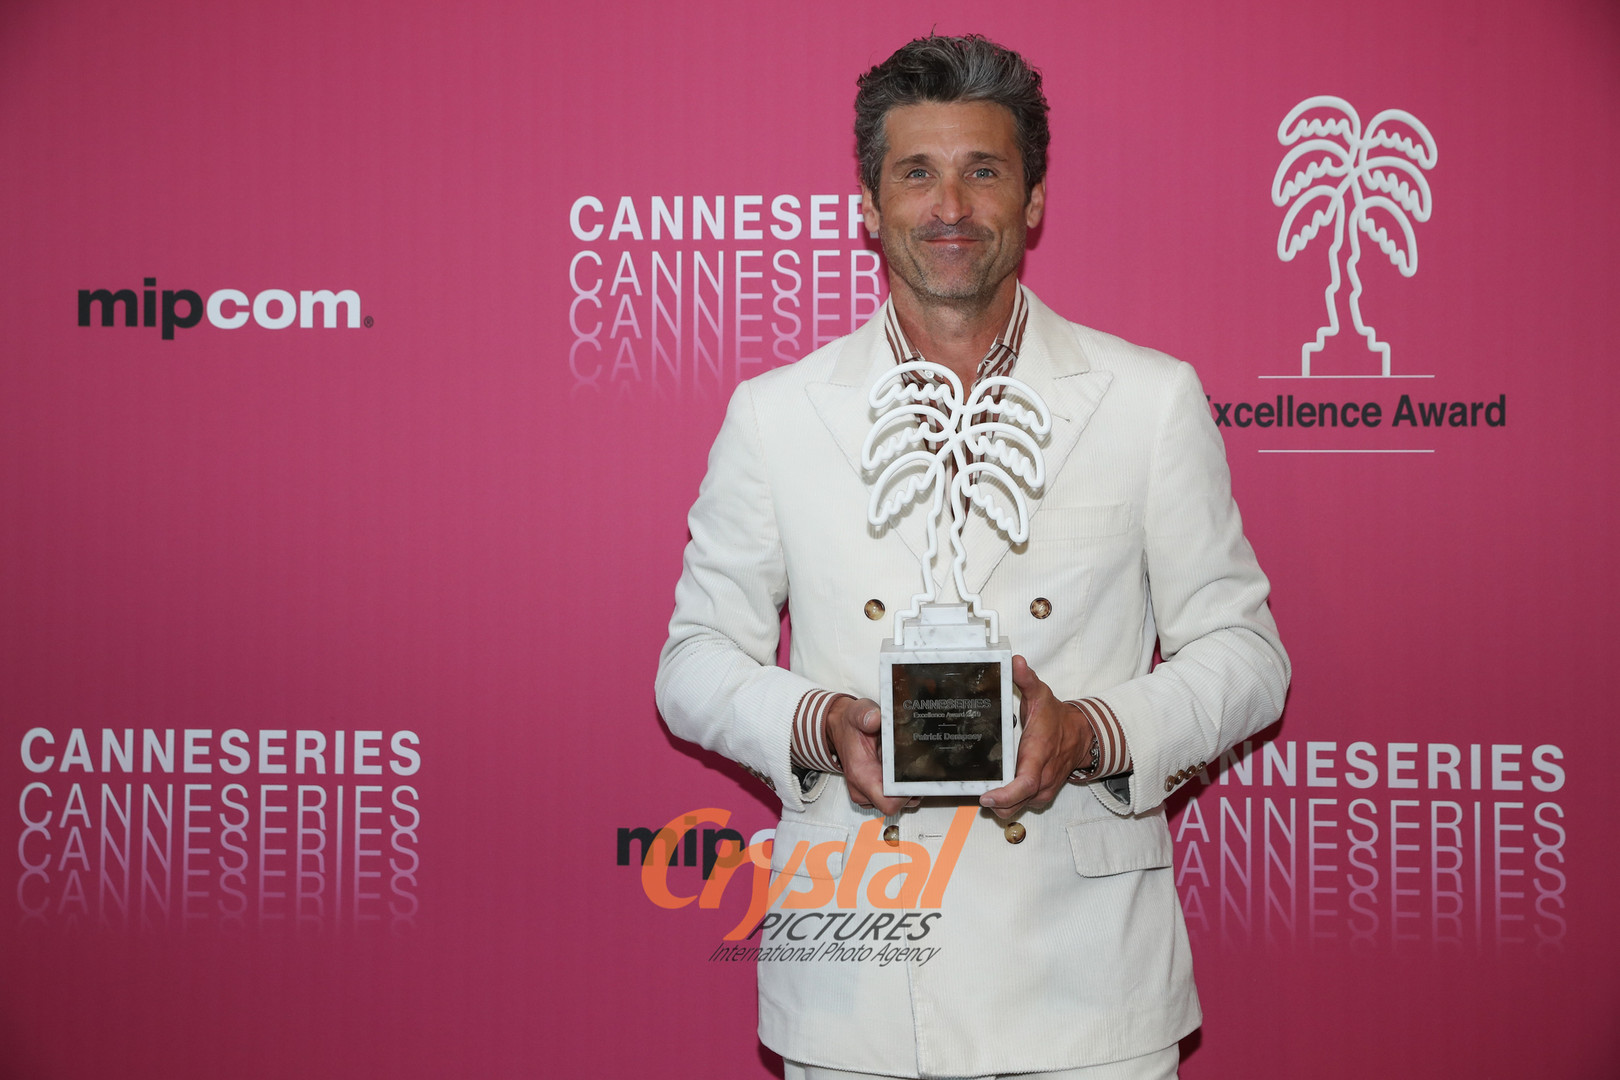 Patrick Dempsey, CANNESERIES.